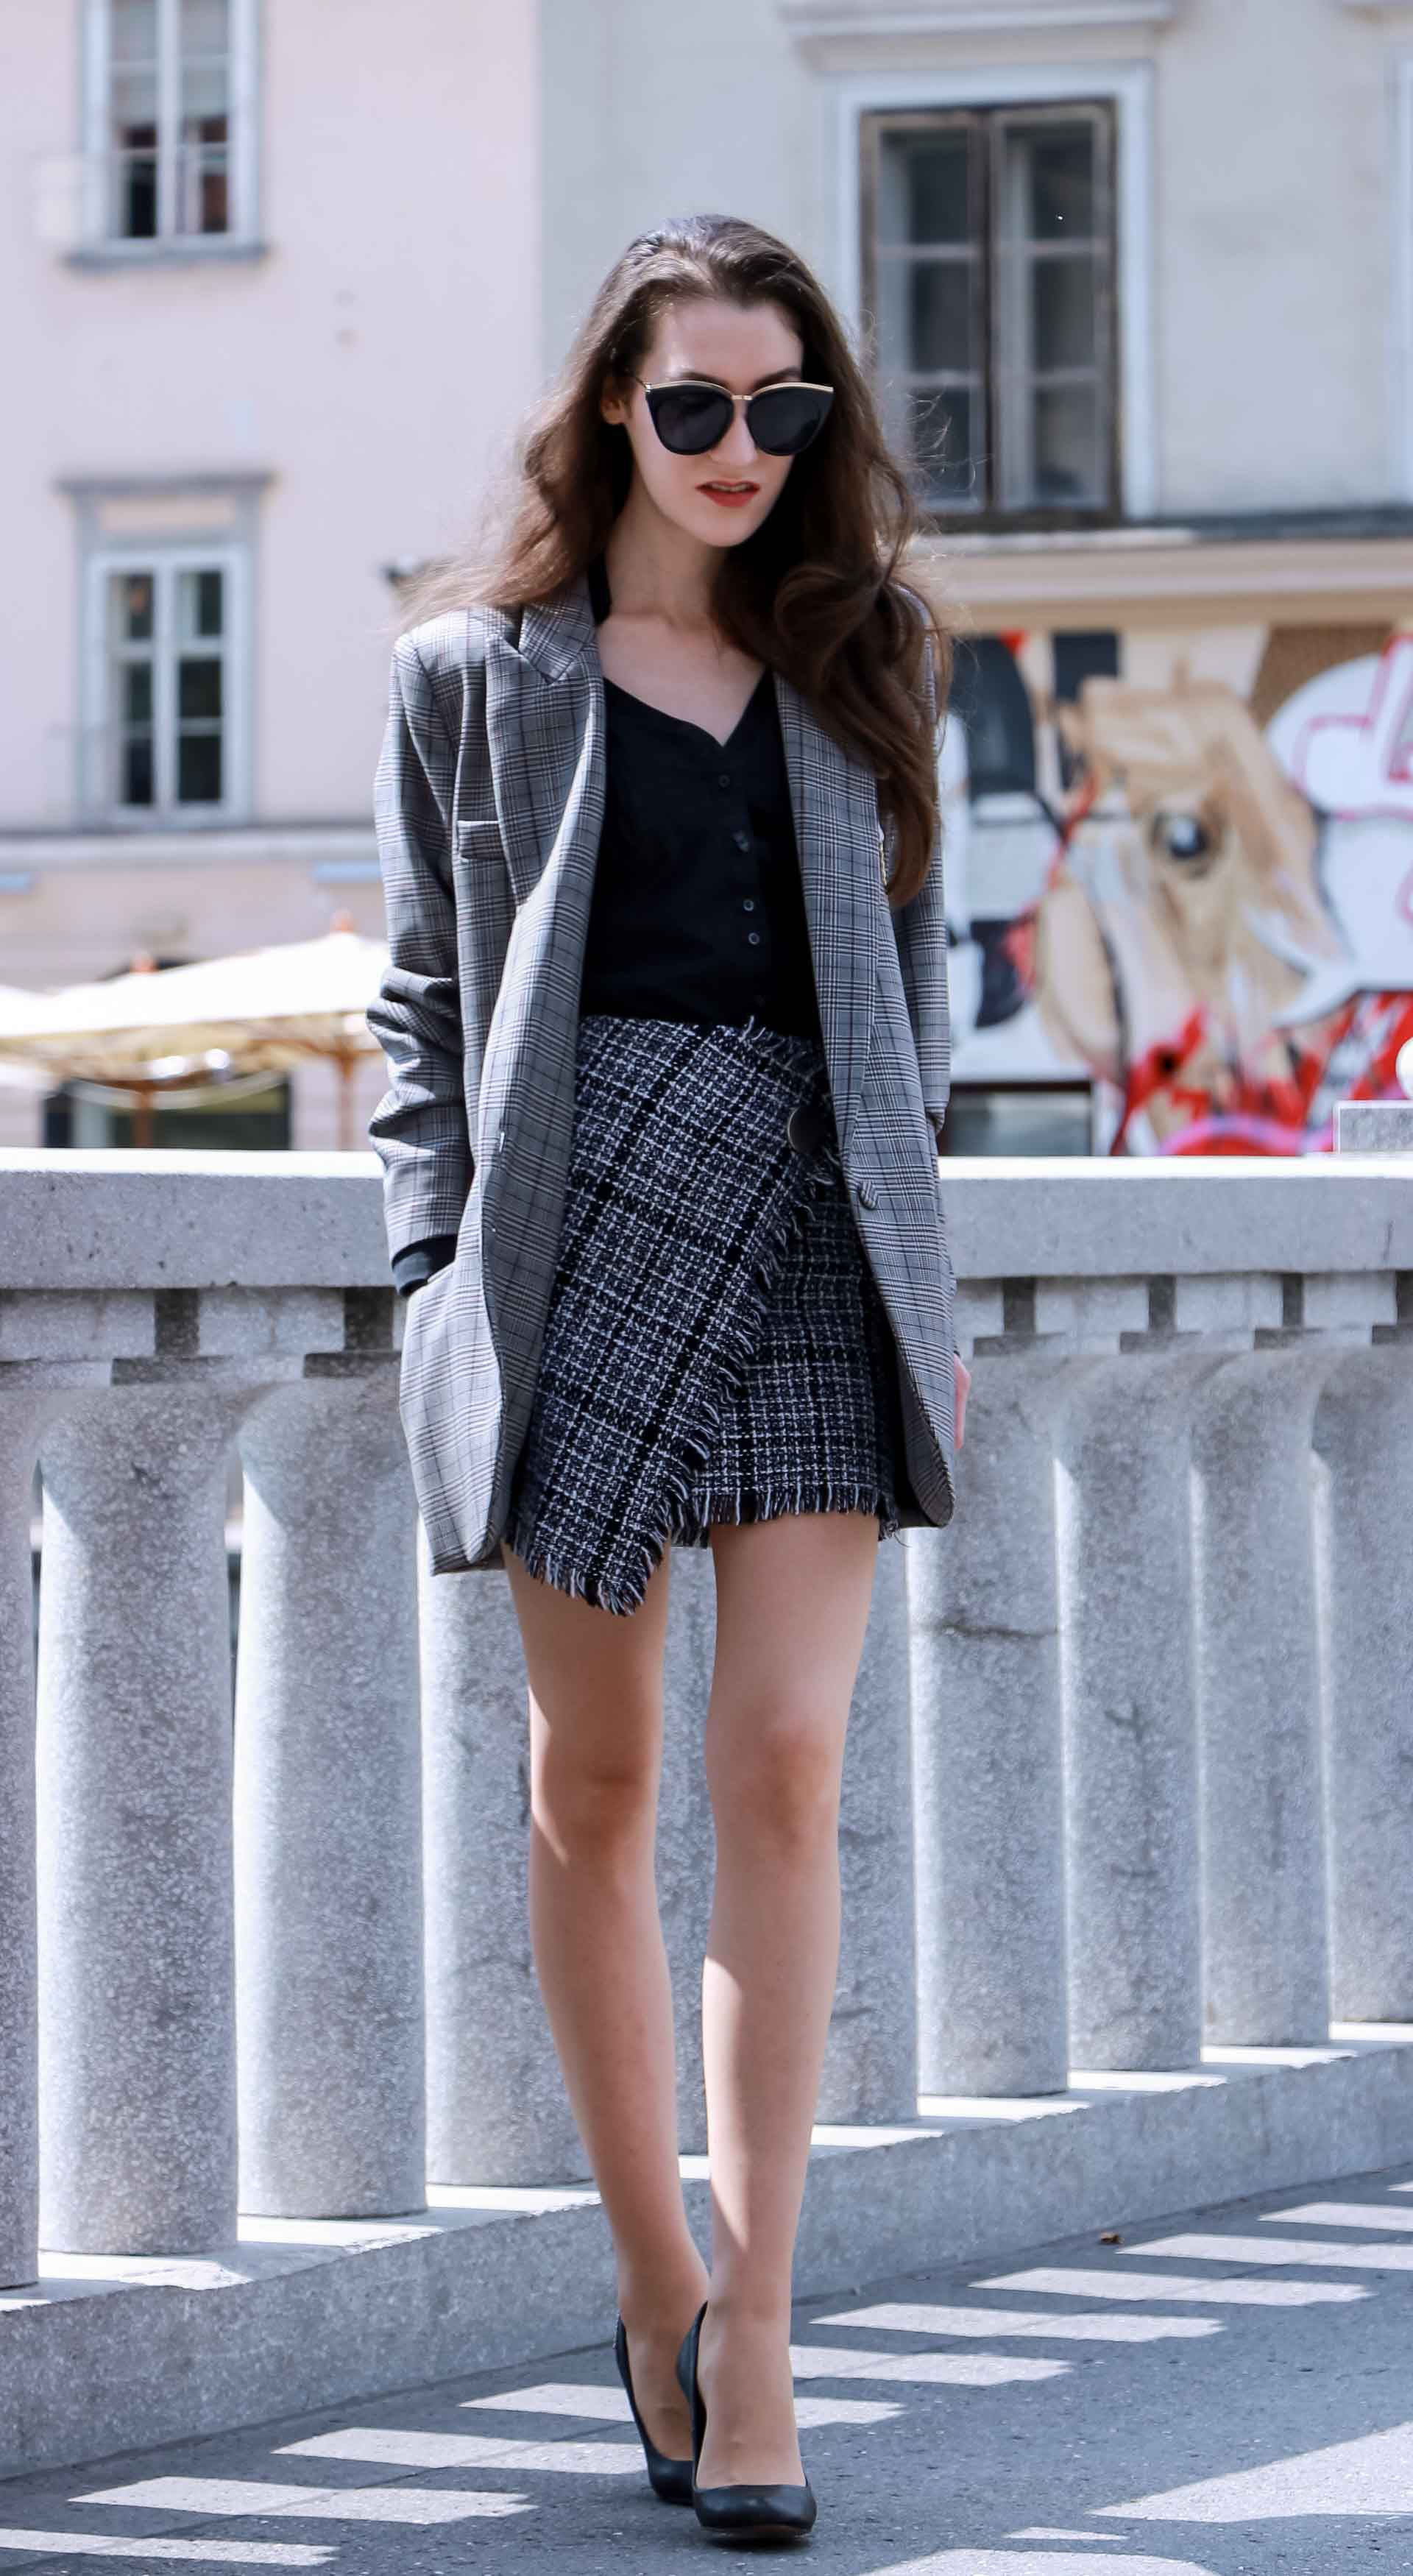 Fashion Blogger Veronika Lipar of Brunette from Wall Street wearing Erika Cavallini oversized boyfriend plaid blazer with short tweed black and white mini skirt from streets, Le specs sunglasses, black pumps and white chain strap shoulder bag while walking down the street in Ljubljana